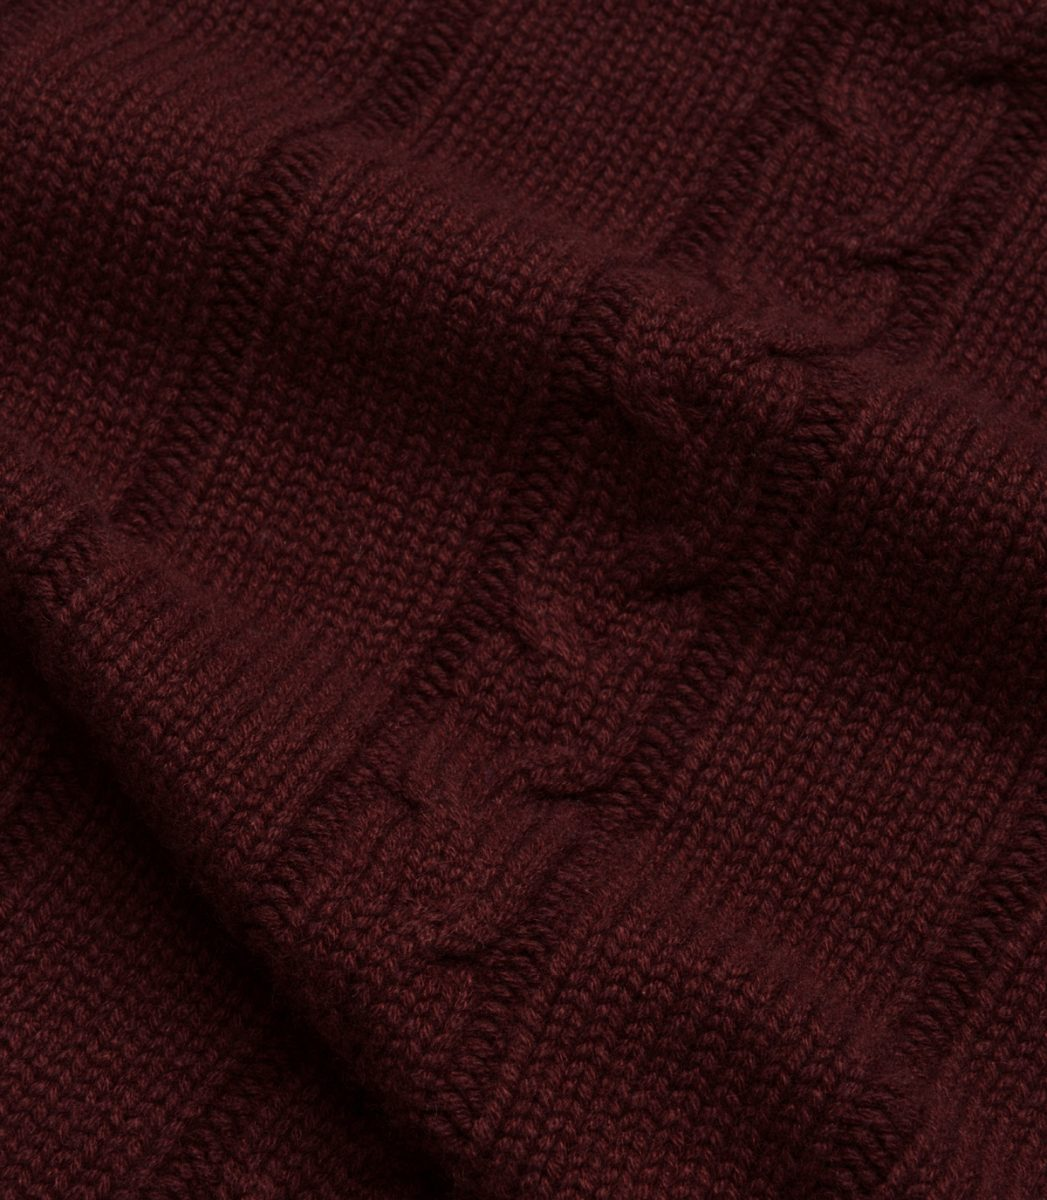 9df1c5da3439 Hand-knitted, one-hundred percent cashmere sourced from the highest peaks  of the Himalayas, this sweater offers one of the softest and most  comfortable ...